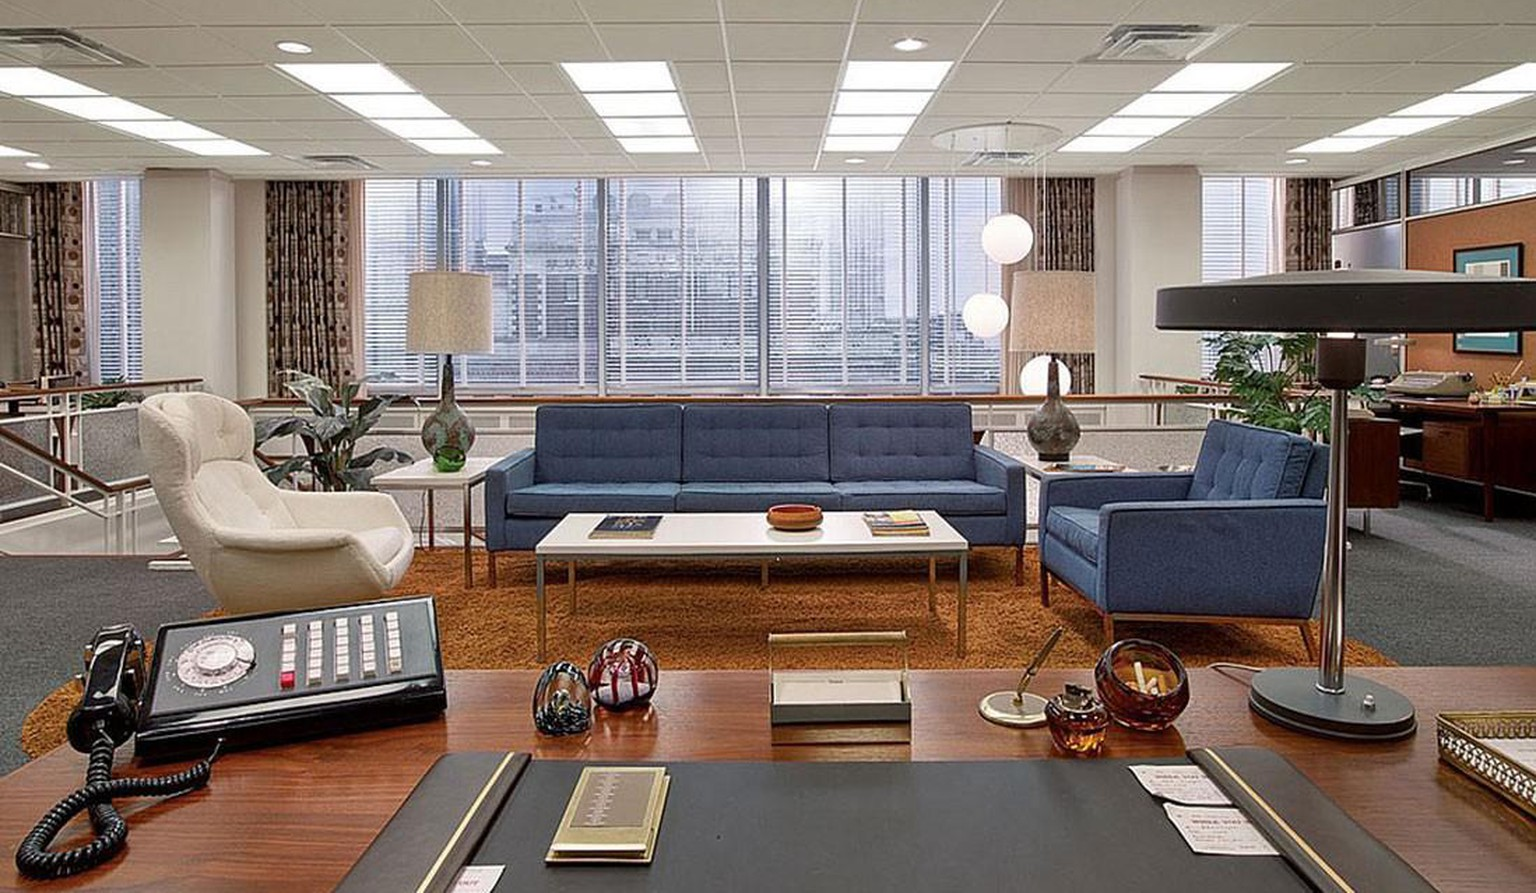 Designed by Florence Knoll in 1954, the eponymous Florence Knoll Sofa (or couch/setee) is distinctive and versatile.  This sofa is seen in many different seater combinations and colours throughout Mad Men and is also available in brown, green, grey, ivory, natural and sand hues, making it a truly versatile addition to your space.  Inspired by the rhythm and proportions of mid-century modern architecture, the Florence Knoll Sofa exhibits a geometric profile, constructed with a solid wood structure and an exposed metal frame, elevated on tubular steel legs.  Iconic designer Florence Knoll's contributions to the world of design are immeasurable, while her inimitable vision over her long illustrious career won her countless awards and accolades, including the National Medal of Arts, awarded by the president, the American Institute of Architects' Industrial Design Gold Medal and the Red Dot Design Award.  https://filmandfurniture.com/product/florence-knoll-3-seat-sofa/